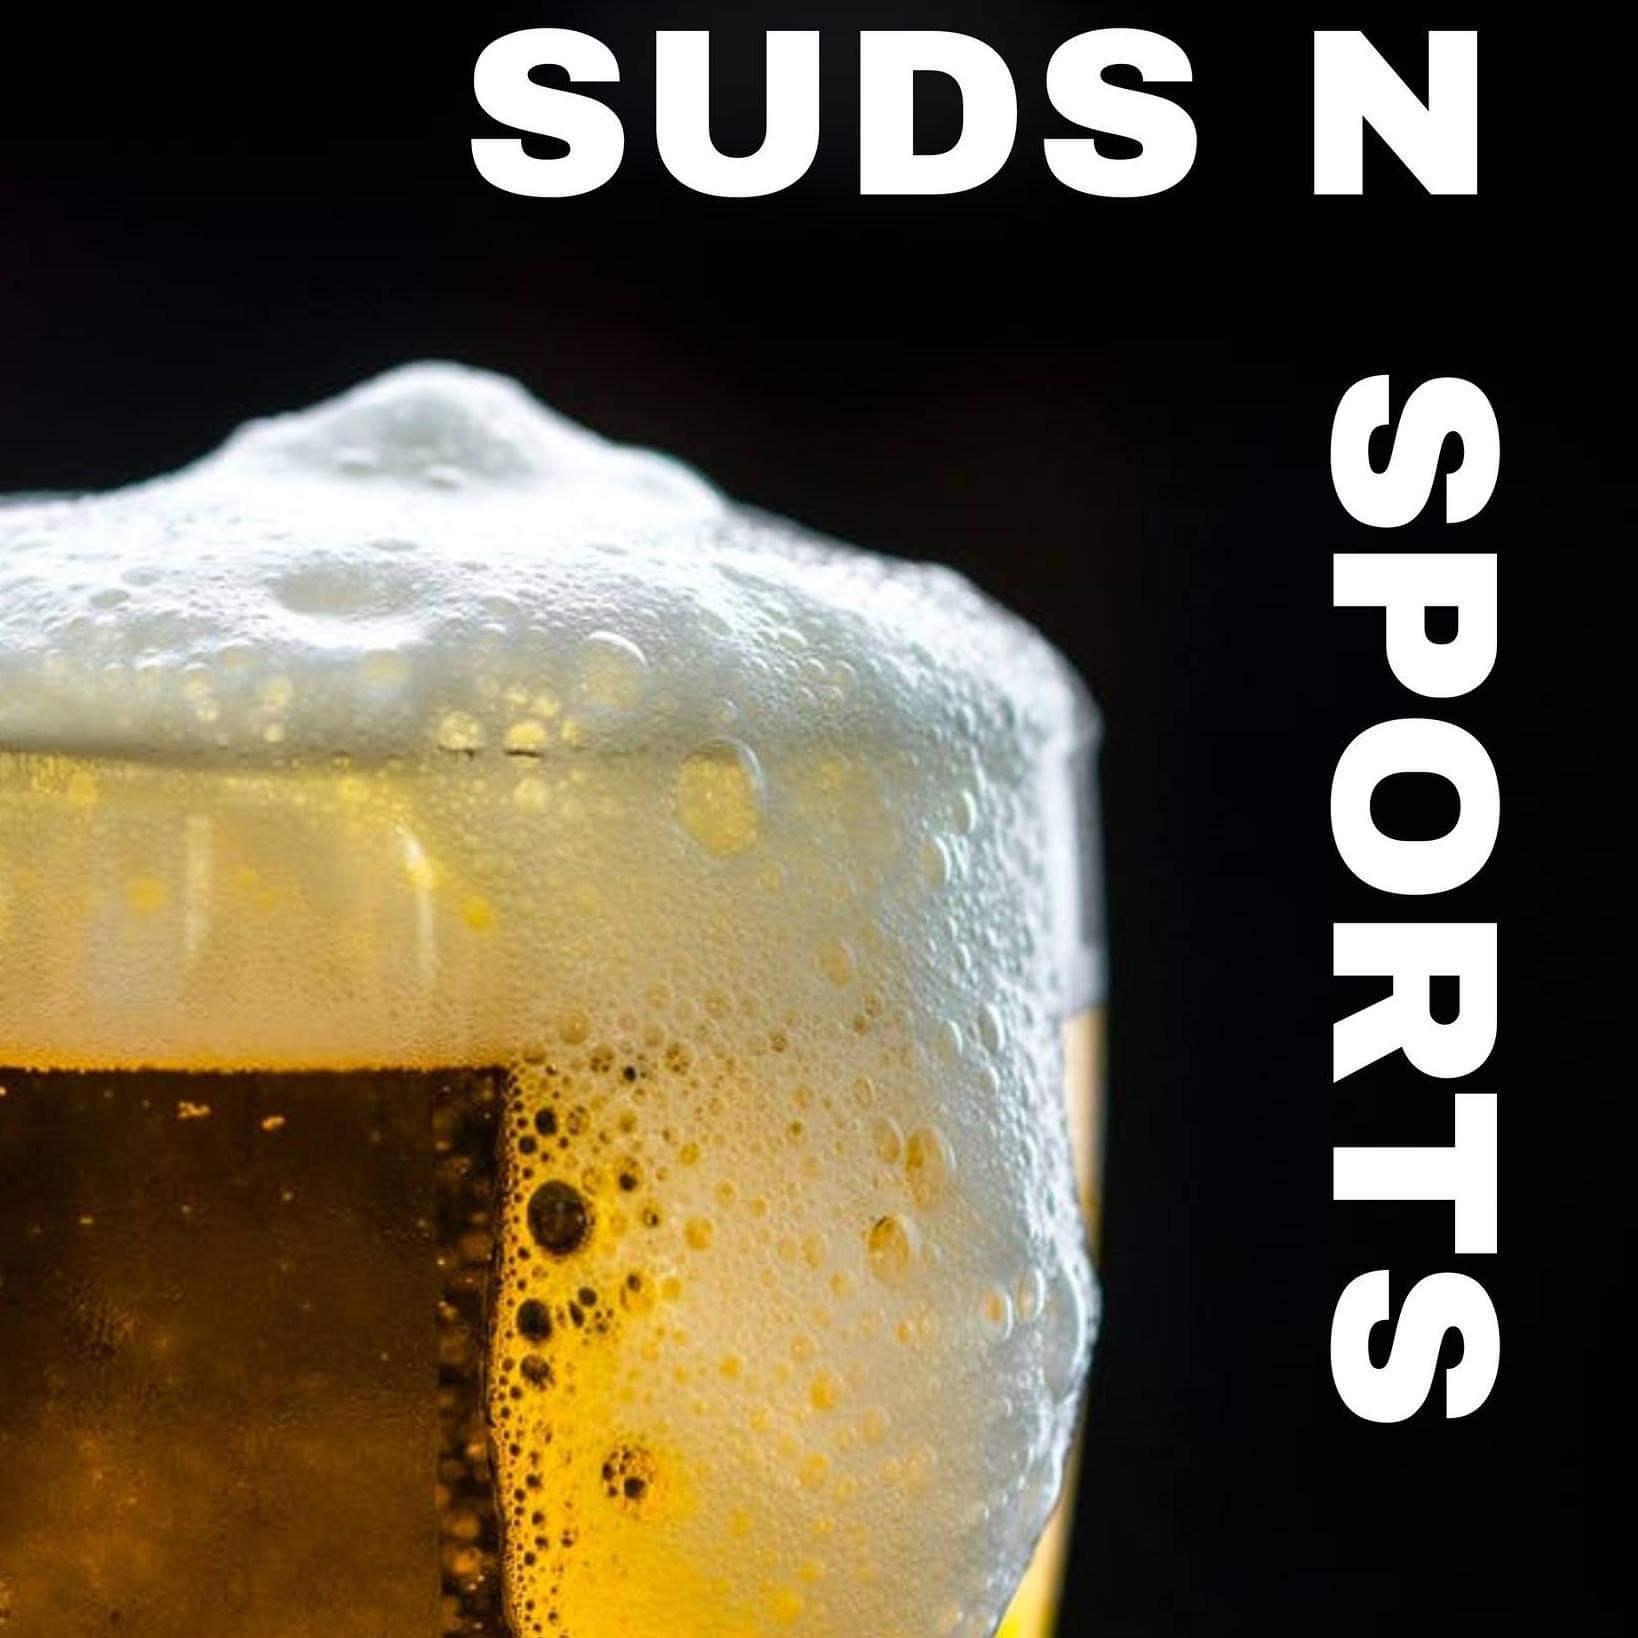 SUDS N SPORTS NCAA FOOTBALL BETTING BREAKDOWN BY CONFERENCE